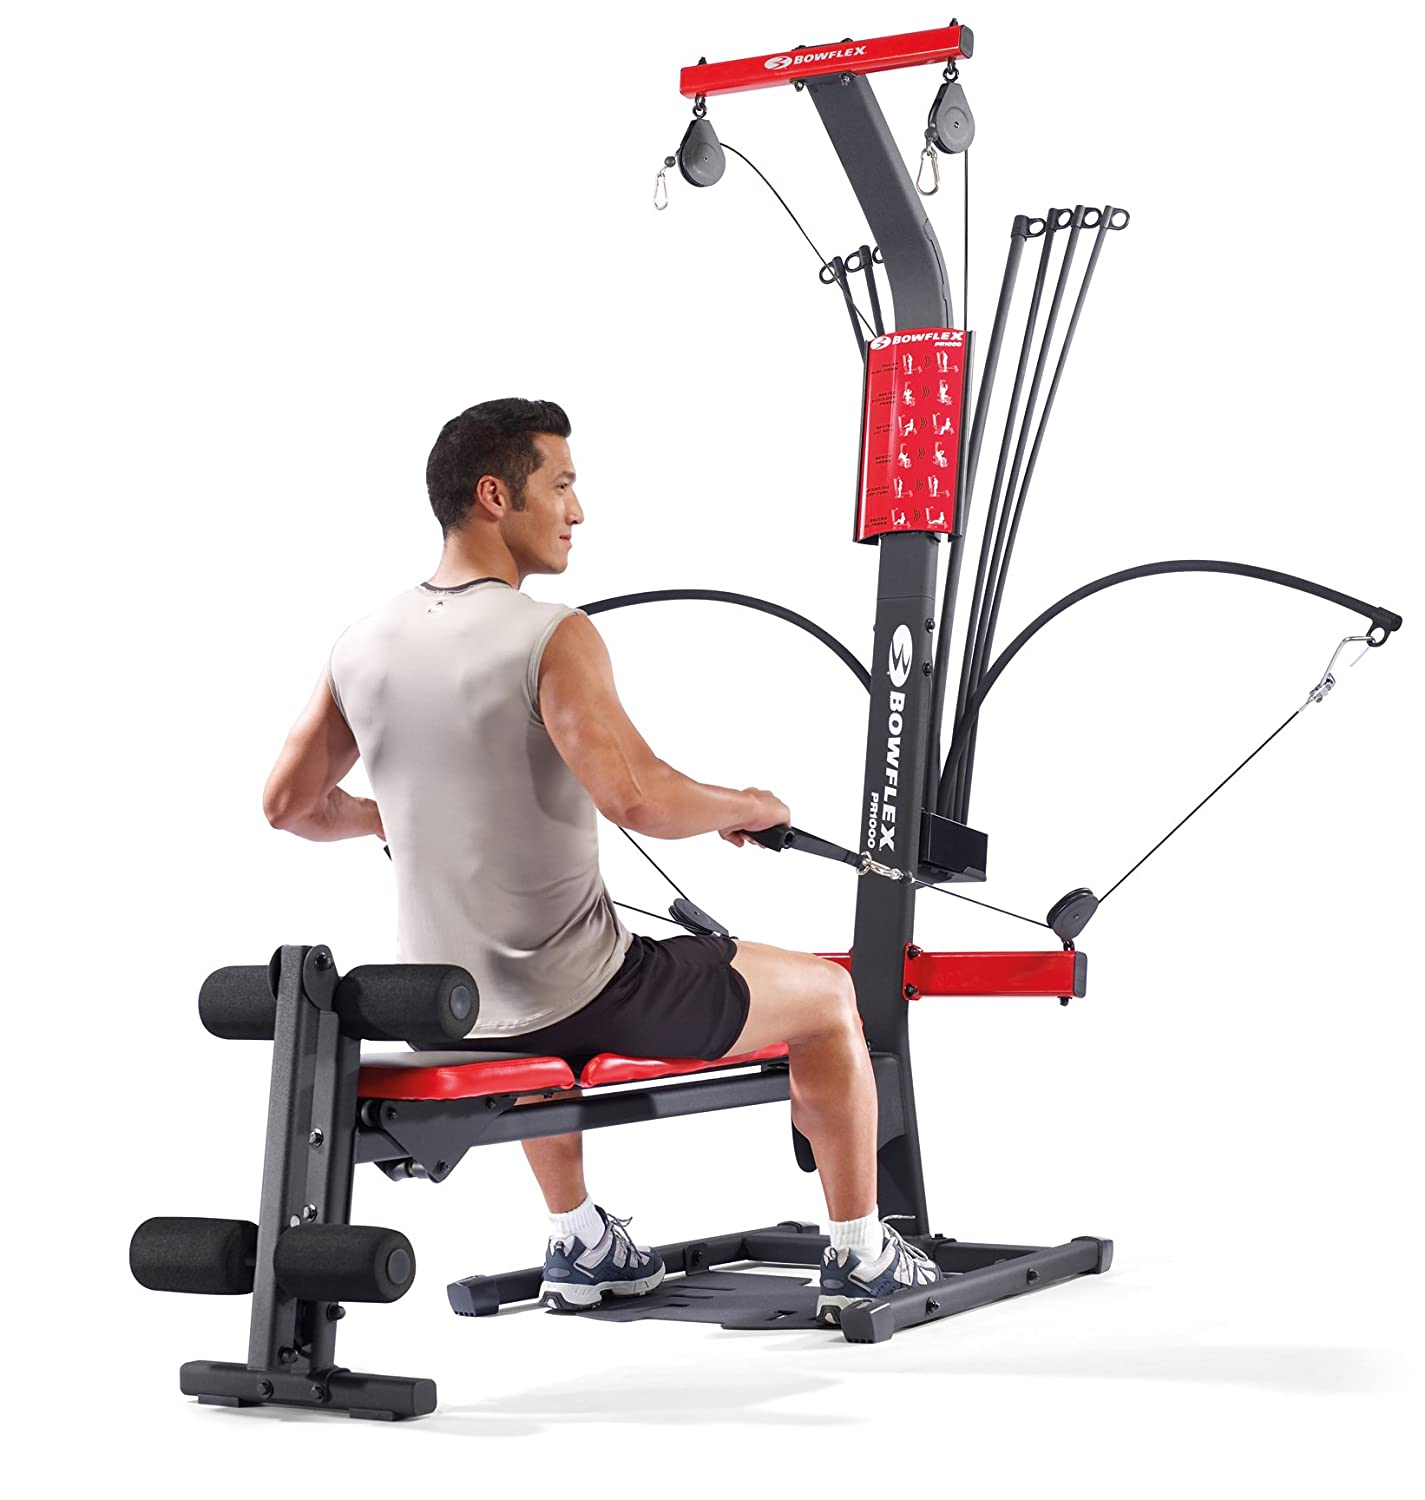 Amazoncom  Bowflex PR Home Gym  Sports  Outdoors - Home gym equipment for sale